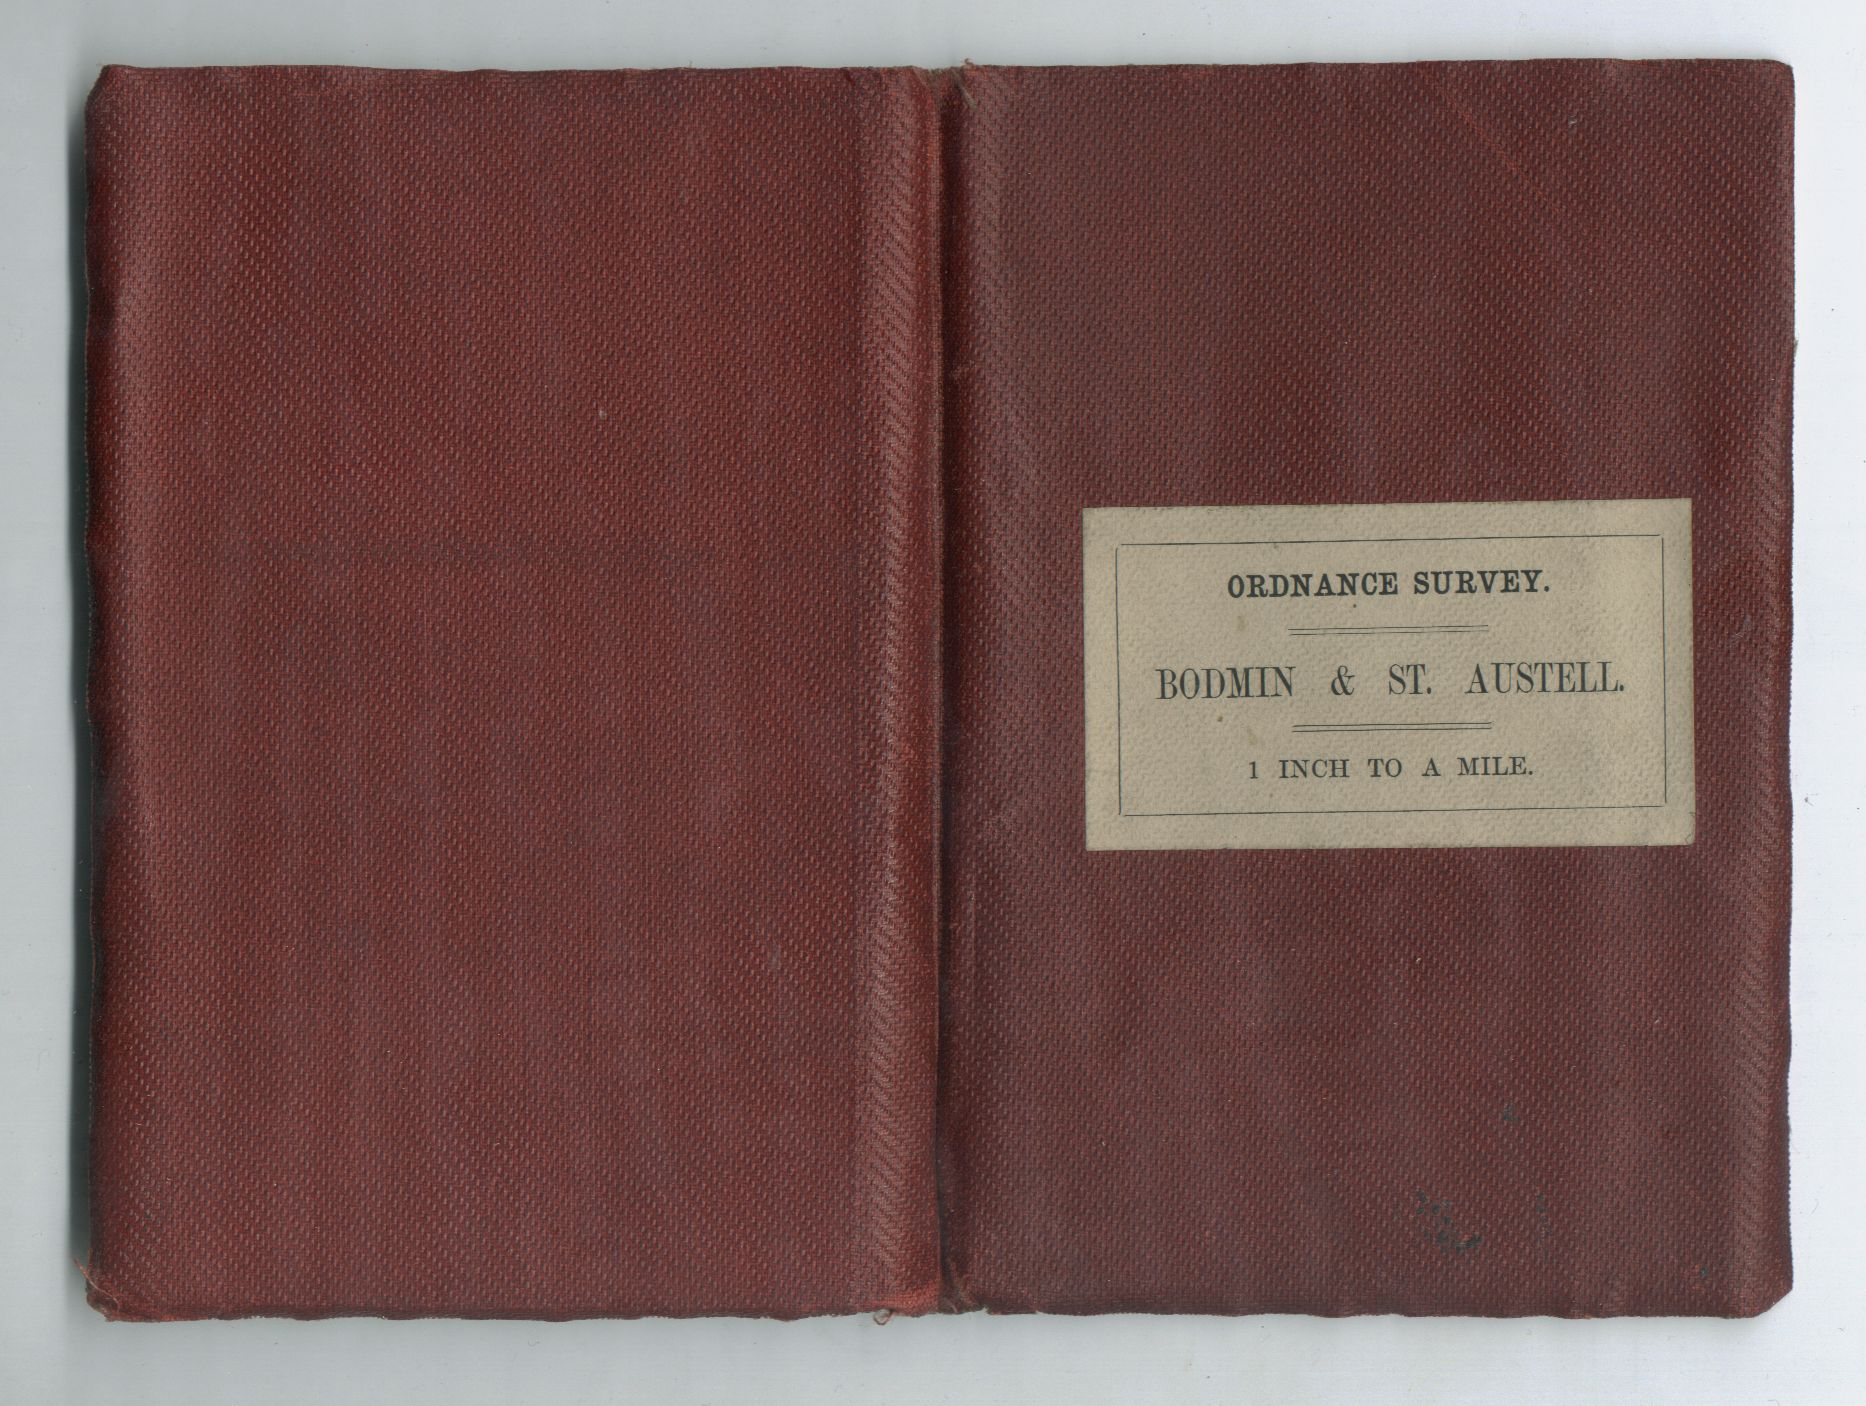 GENERAL PURPOSE MAP COVERS   The Charles Close Society